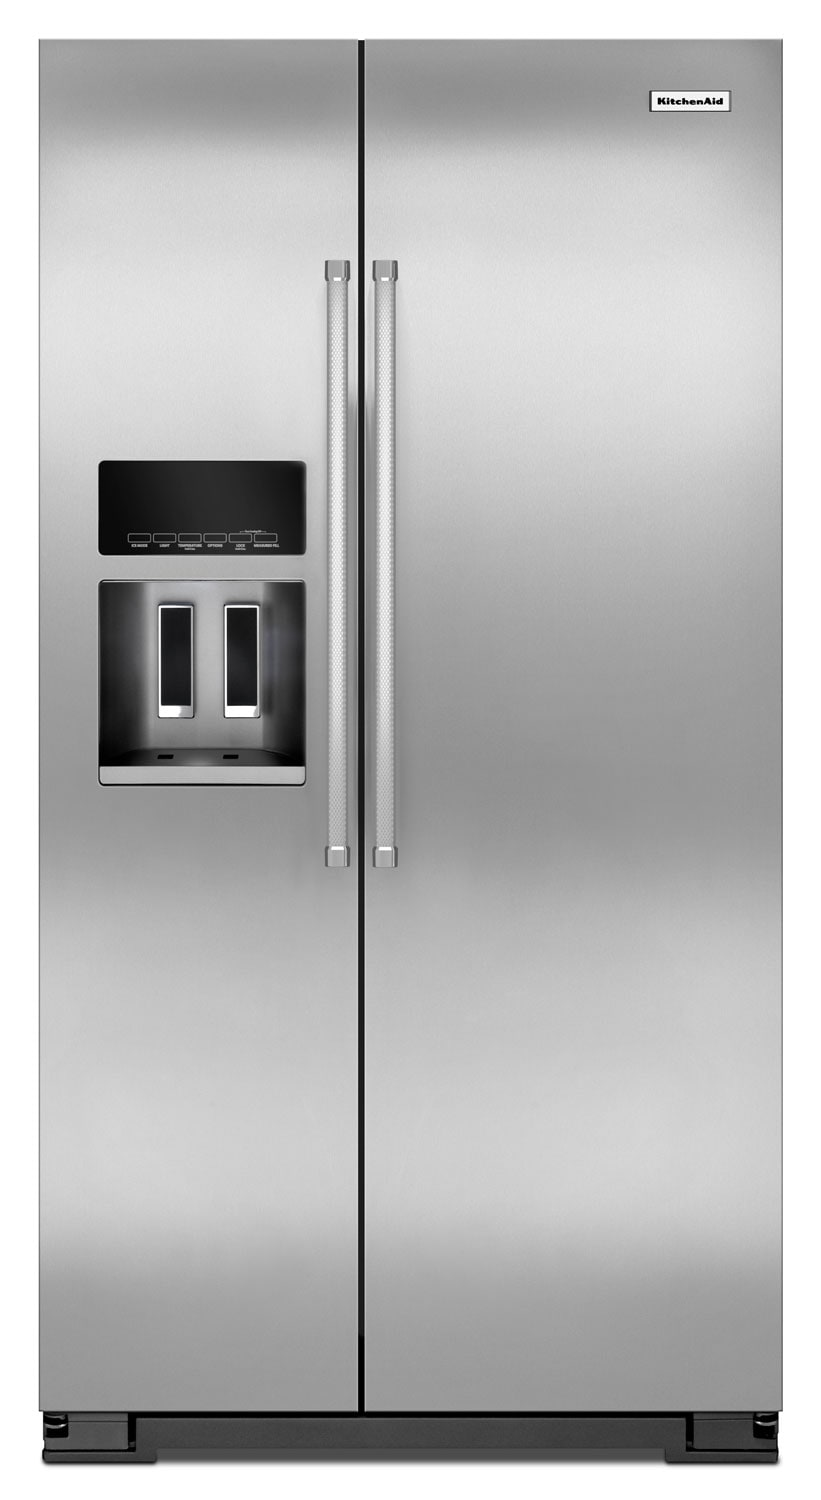 Refrigerators and Freezers - KitchenAid Stainless Steel Side-by-Side Refrigerator (24.8 Cu. Ft.) - KRSF505ESS